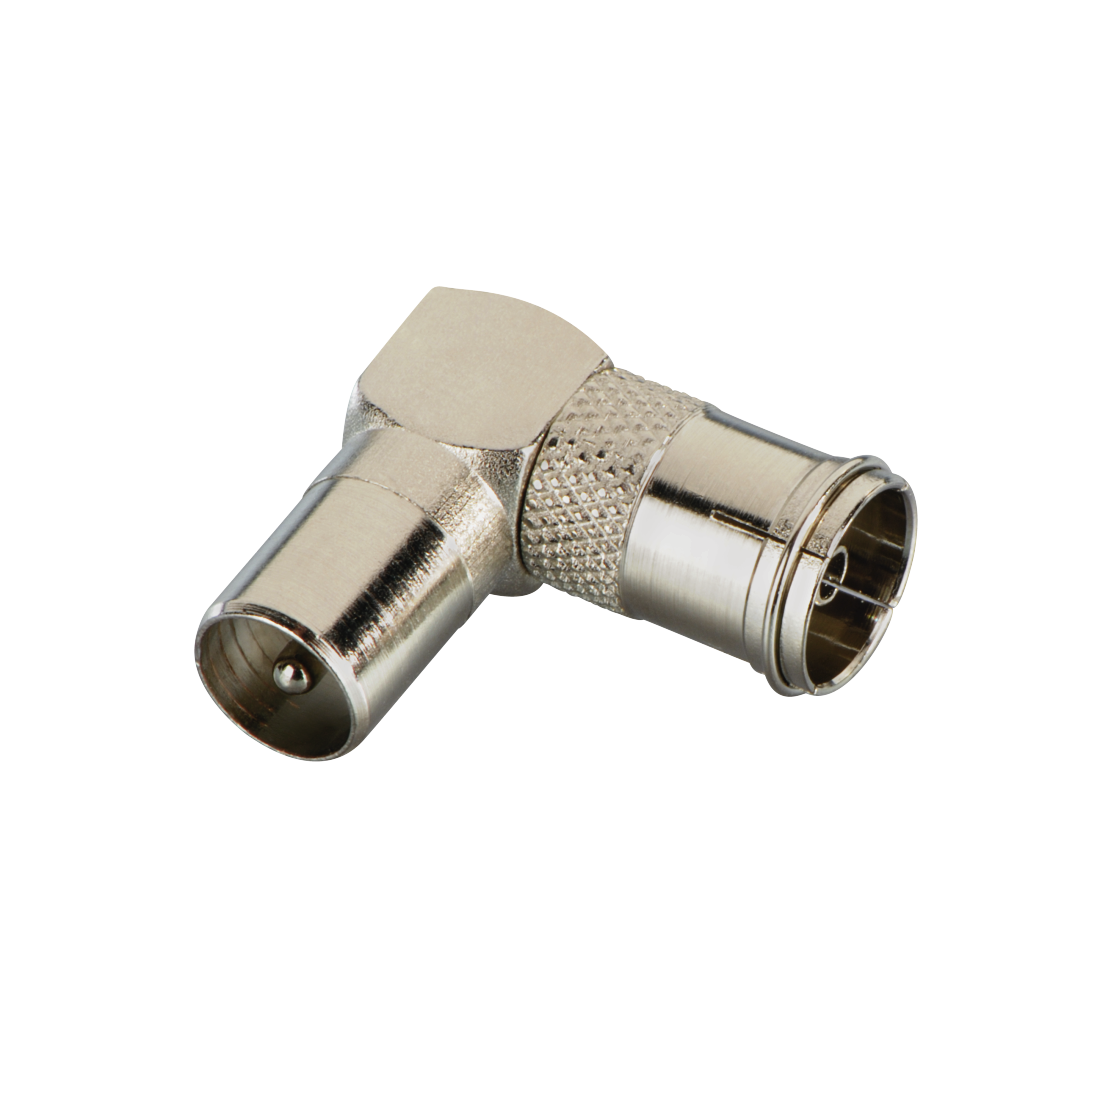 abx High-Res Image - Avinity, Antenna Angle Adapter, 90°, coax plug - coax socket